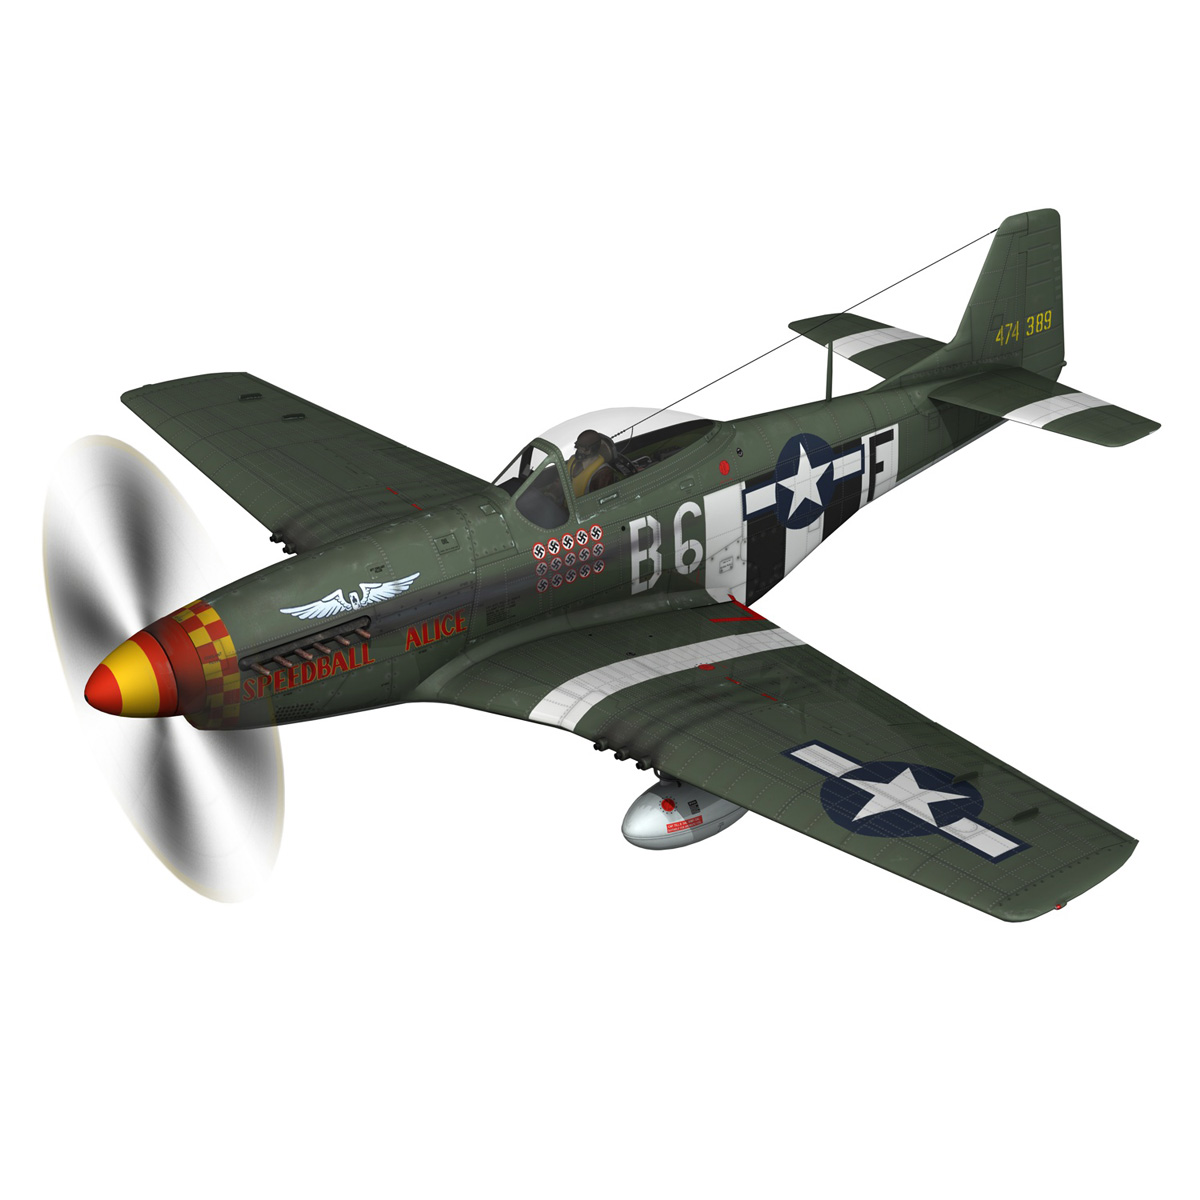 north american p-51d mustang – speedball alice 3d model fbx c4d lwo obj 280311